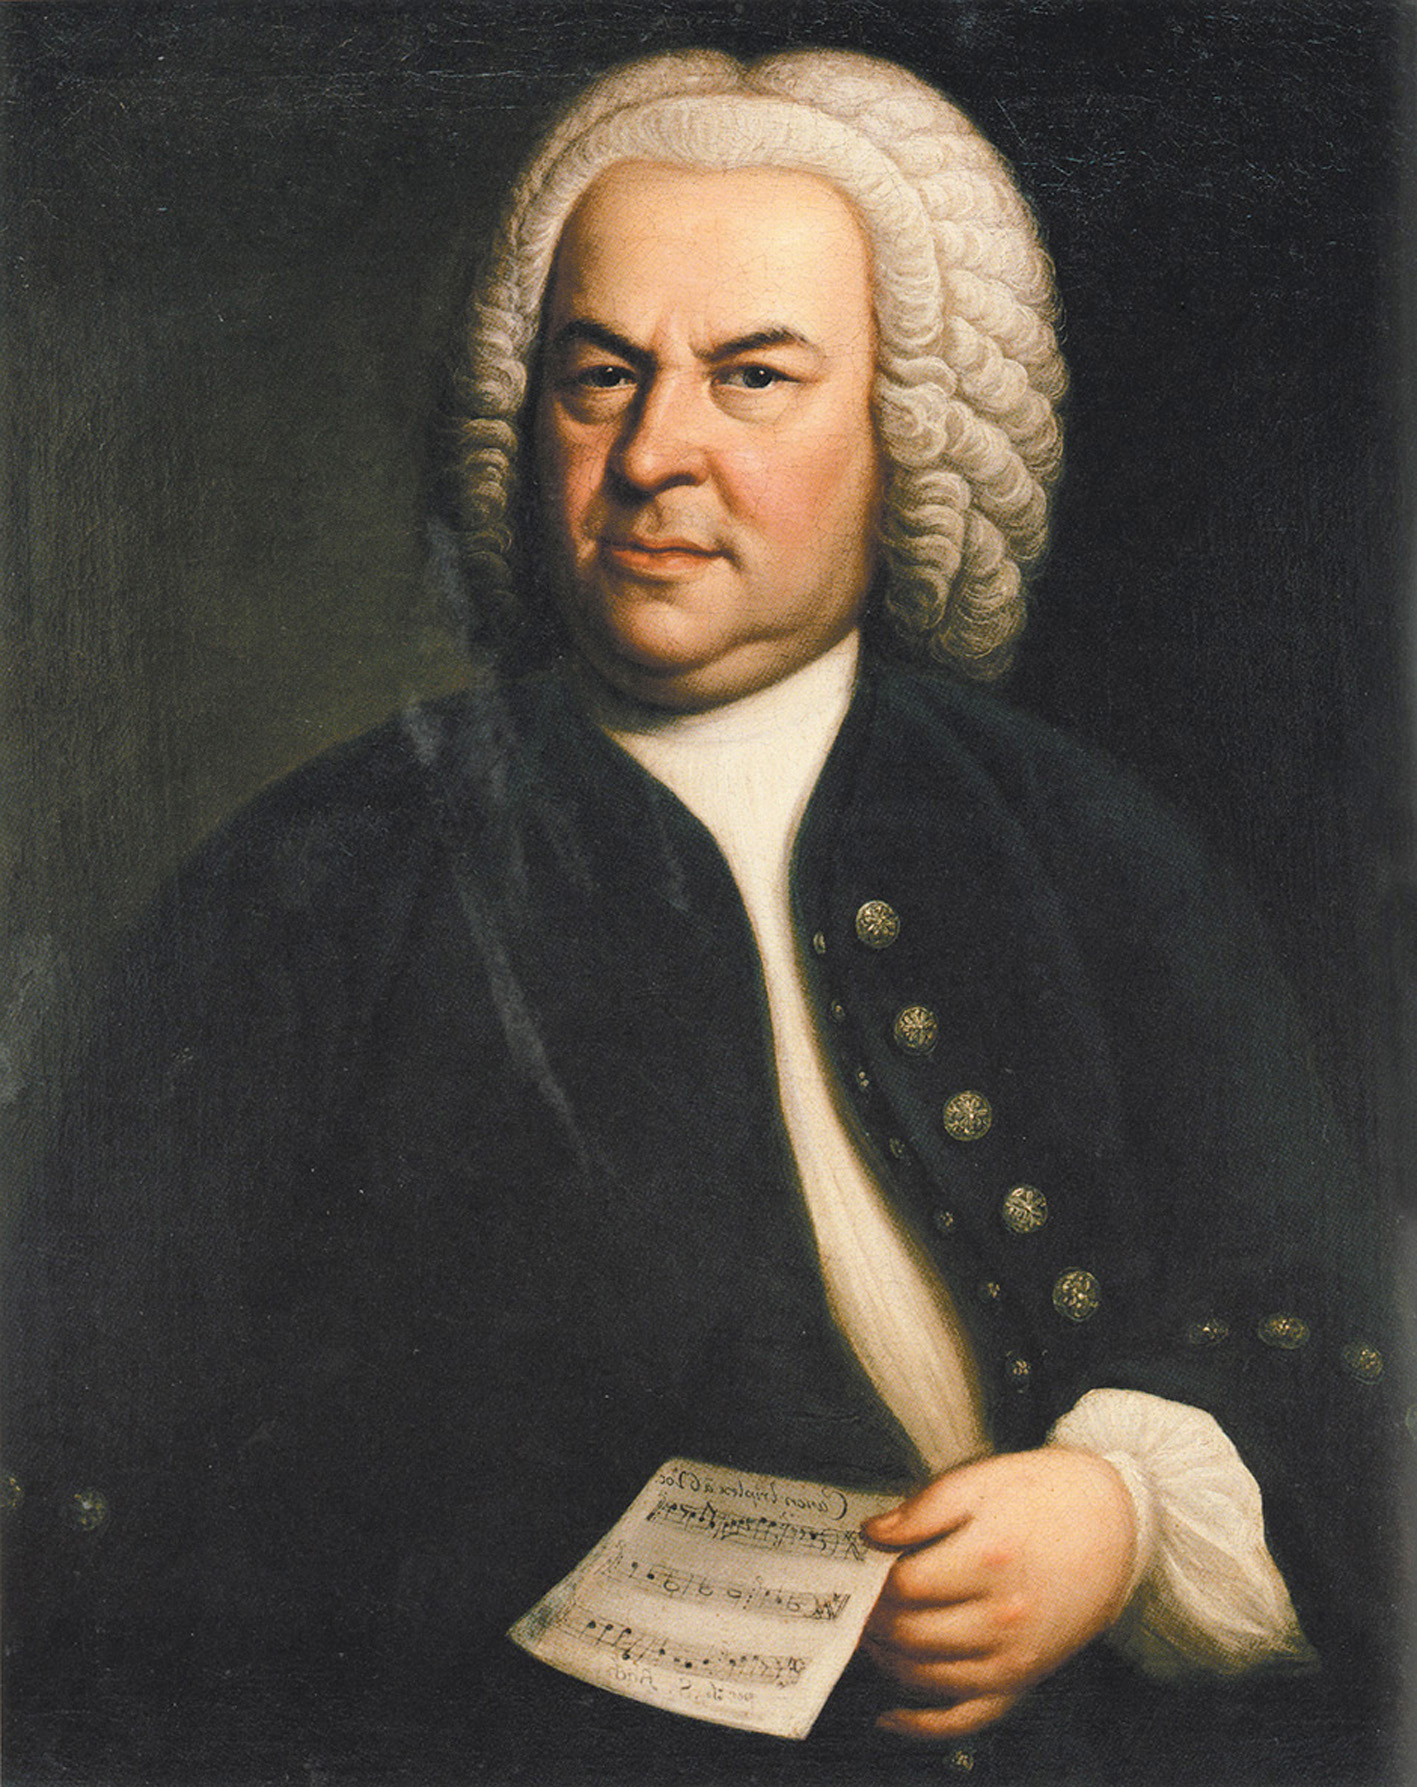 johann sebastian bach The simple surname of a person who was anything but simple johann sebastian bach's (1685-1750) tremendous compositional output included instrumental works such as orchestral suites, chamber music, keyboard works, virtuoso pieces for specific instruments, music for no specified instrumentation, and.